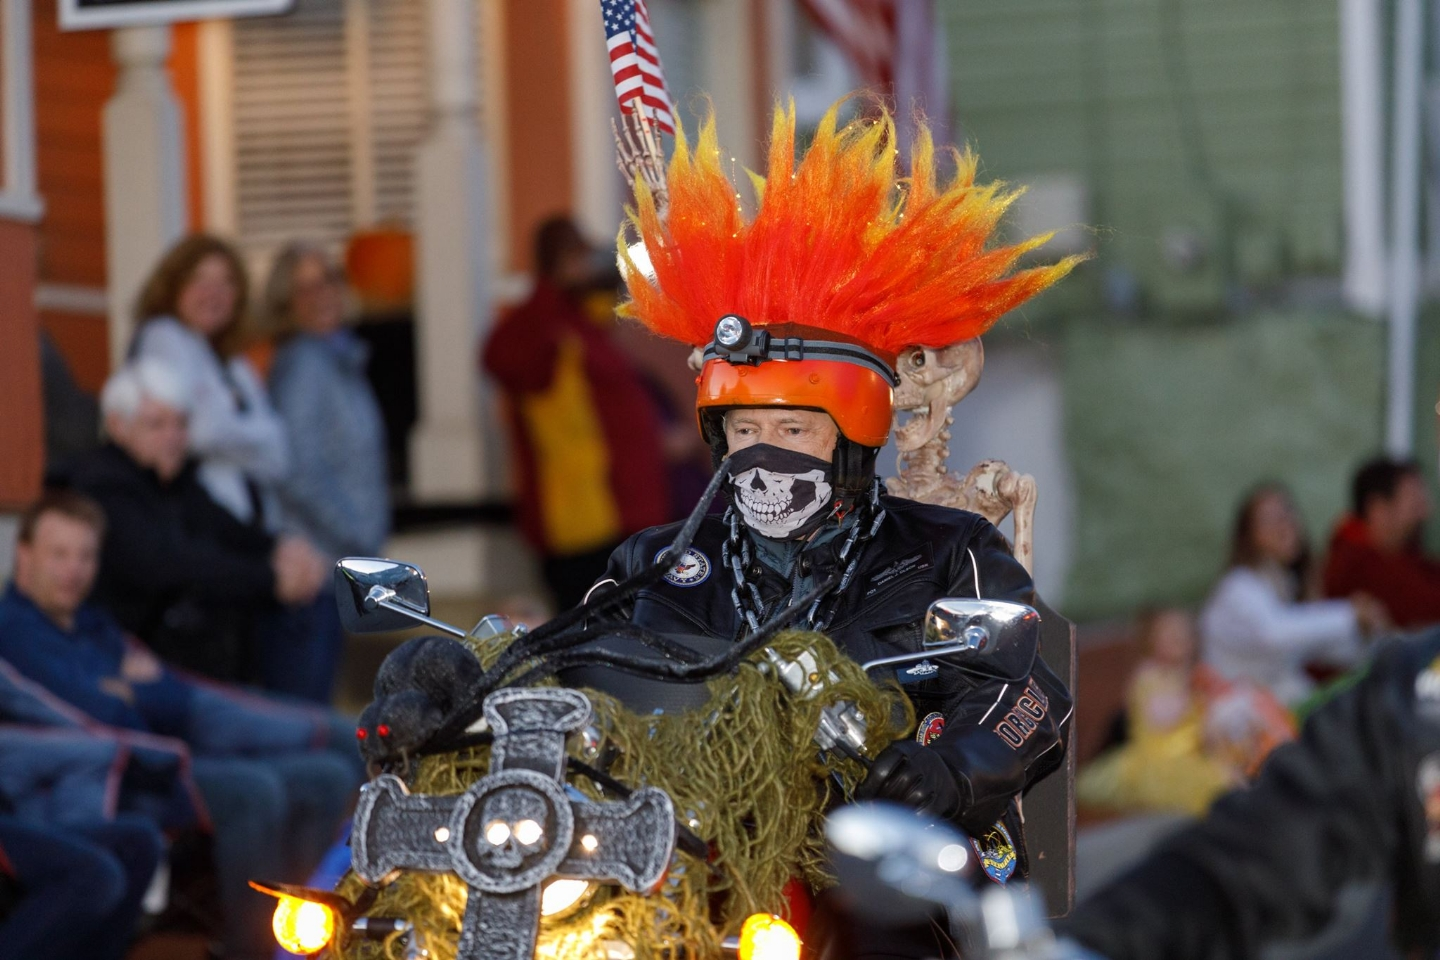 Dan Olsen Ghost Rides in the Parade.  Photo Courtesy of Mark Mogle Photography - www.markmoglephoto.com